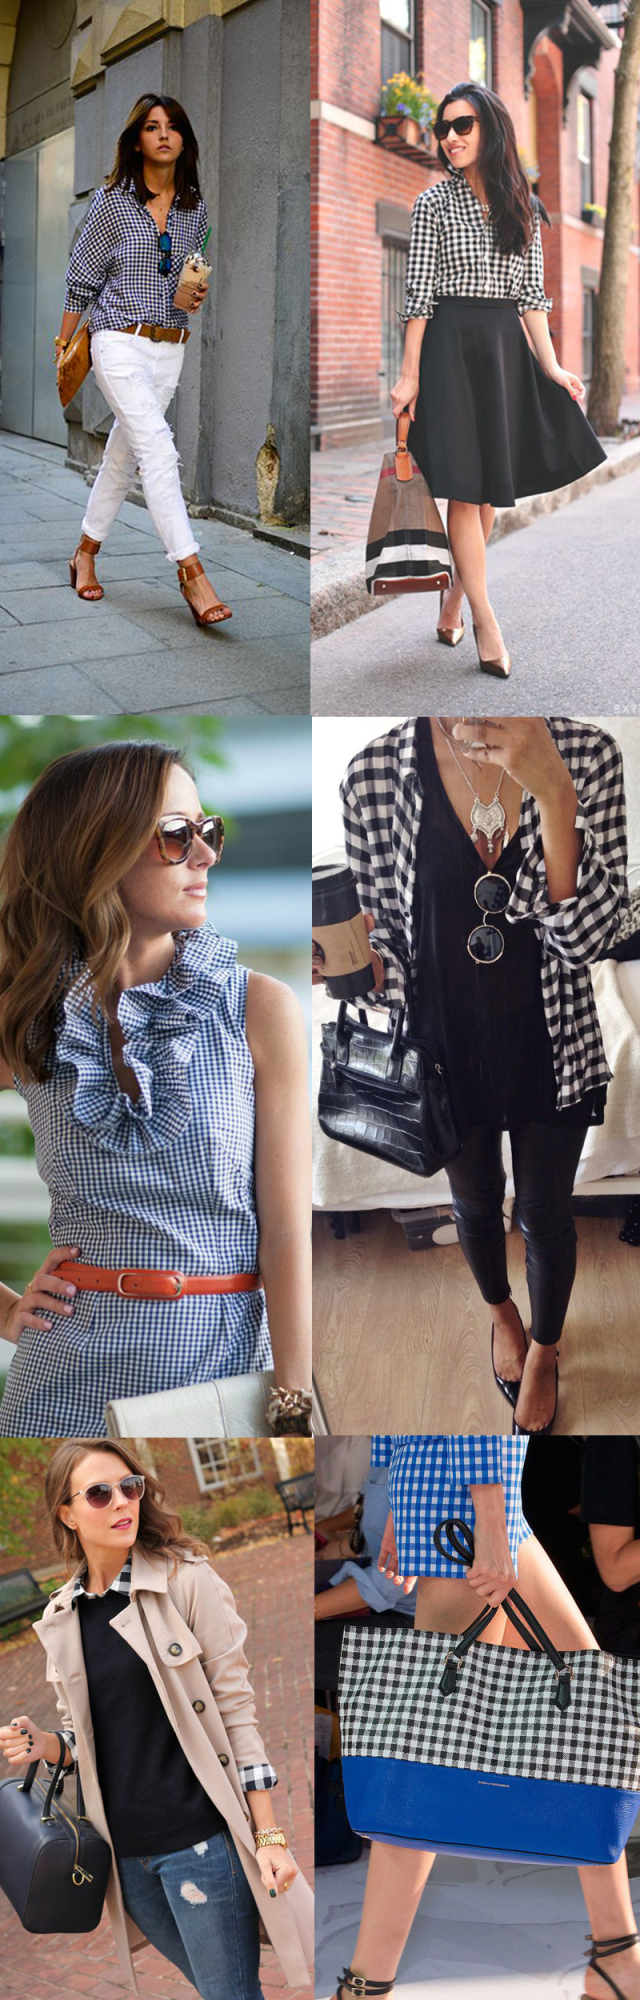 gingham-style_spring-fashion1